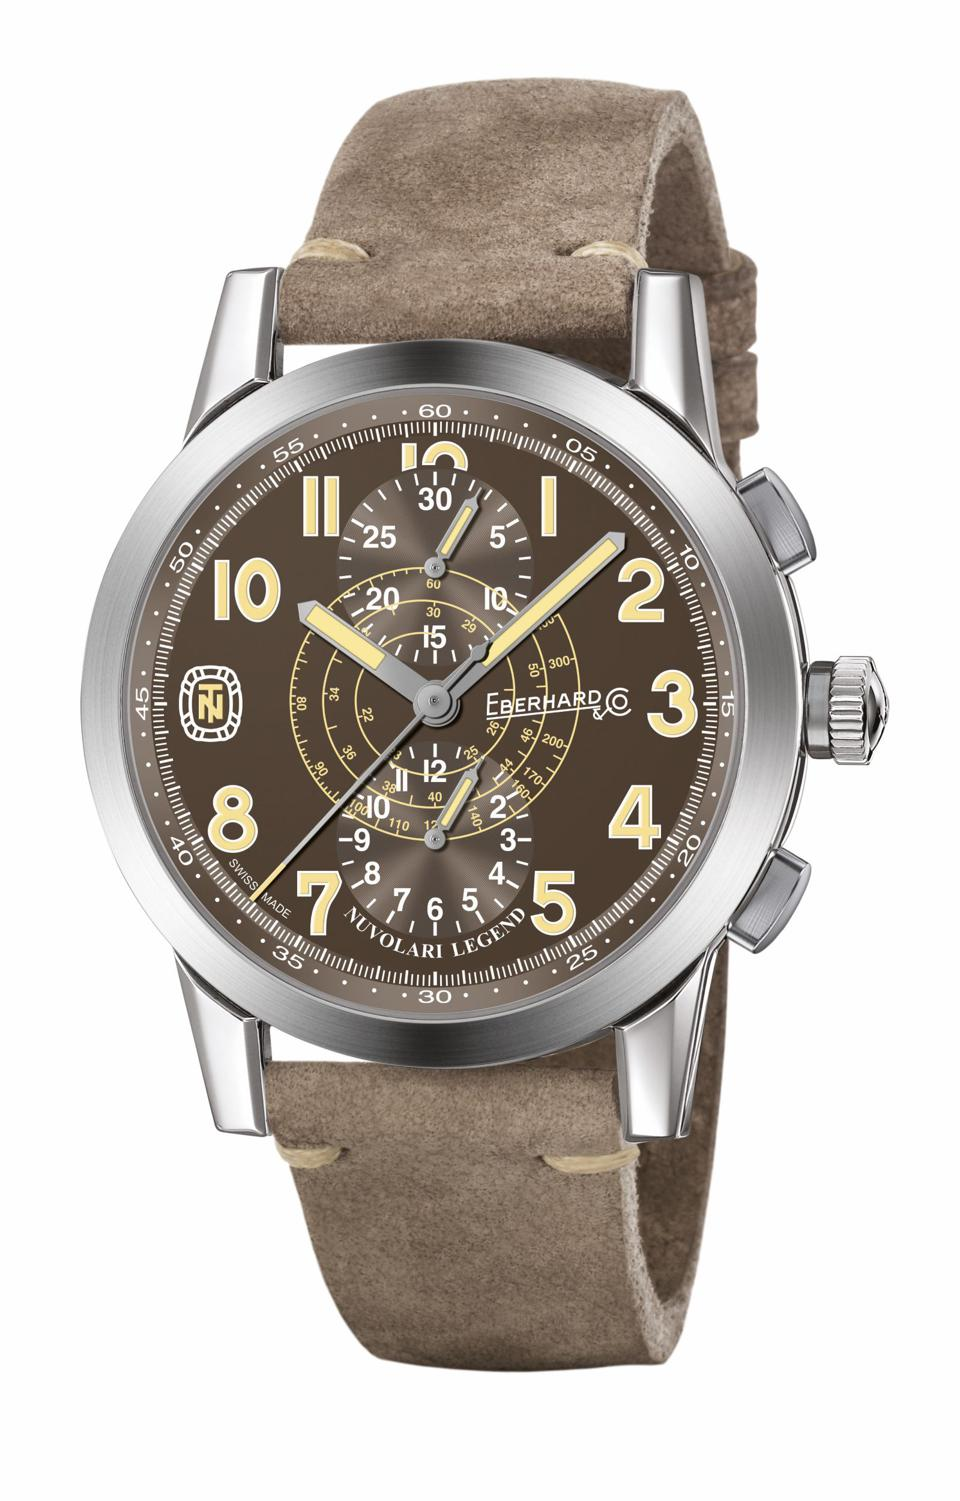 The Eberhard Nuvolari Legend is one of the latest chronographs by Eberhard